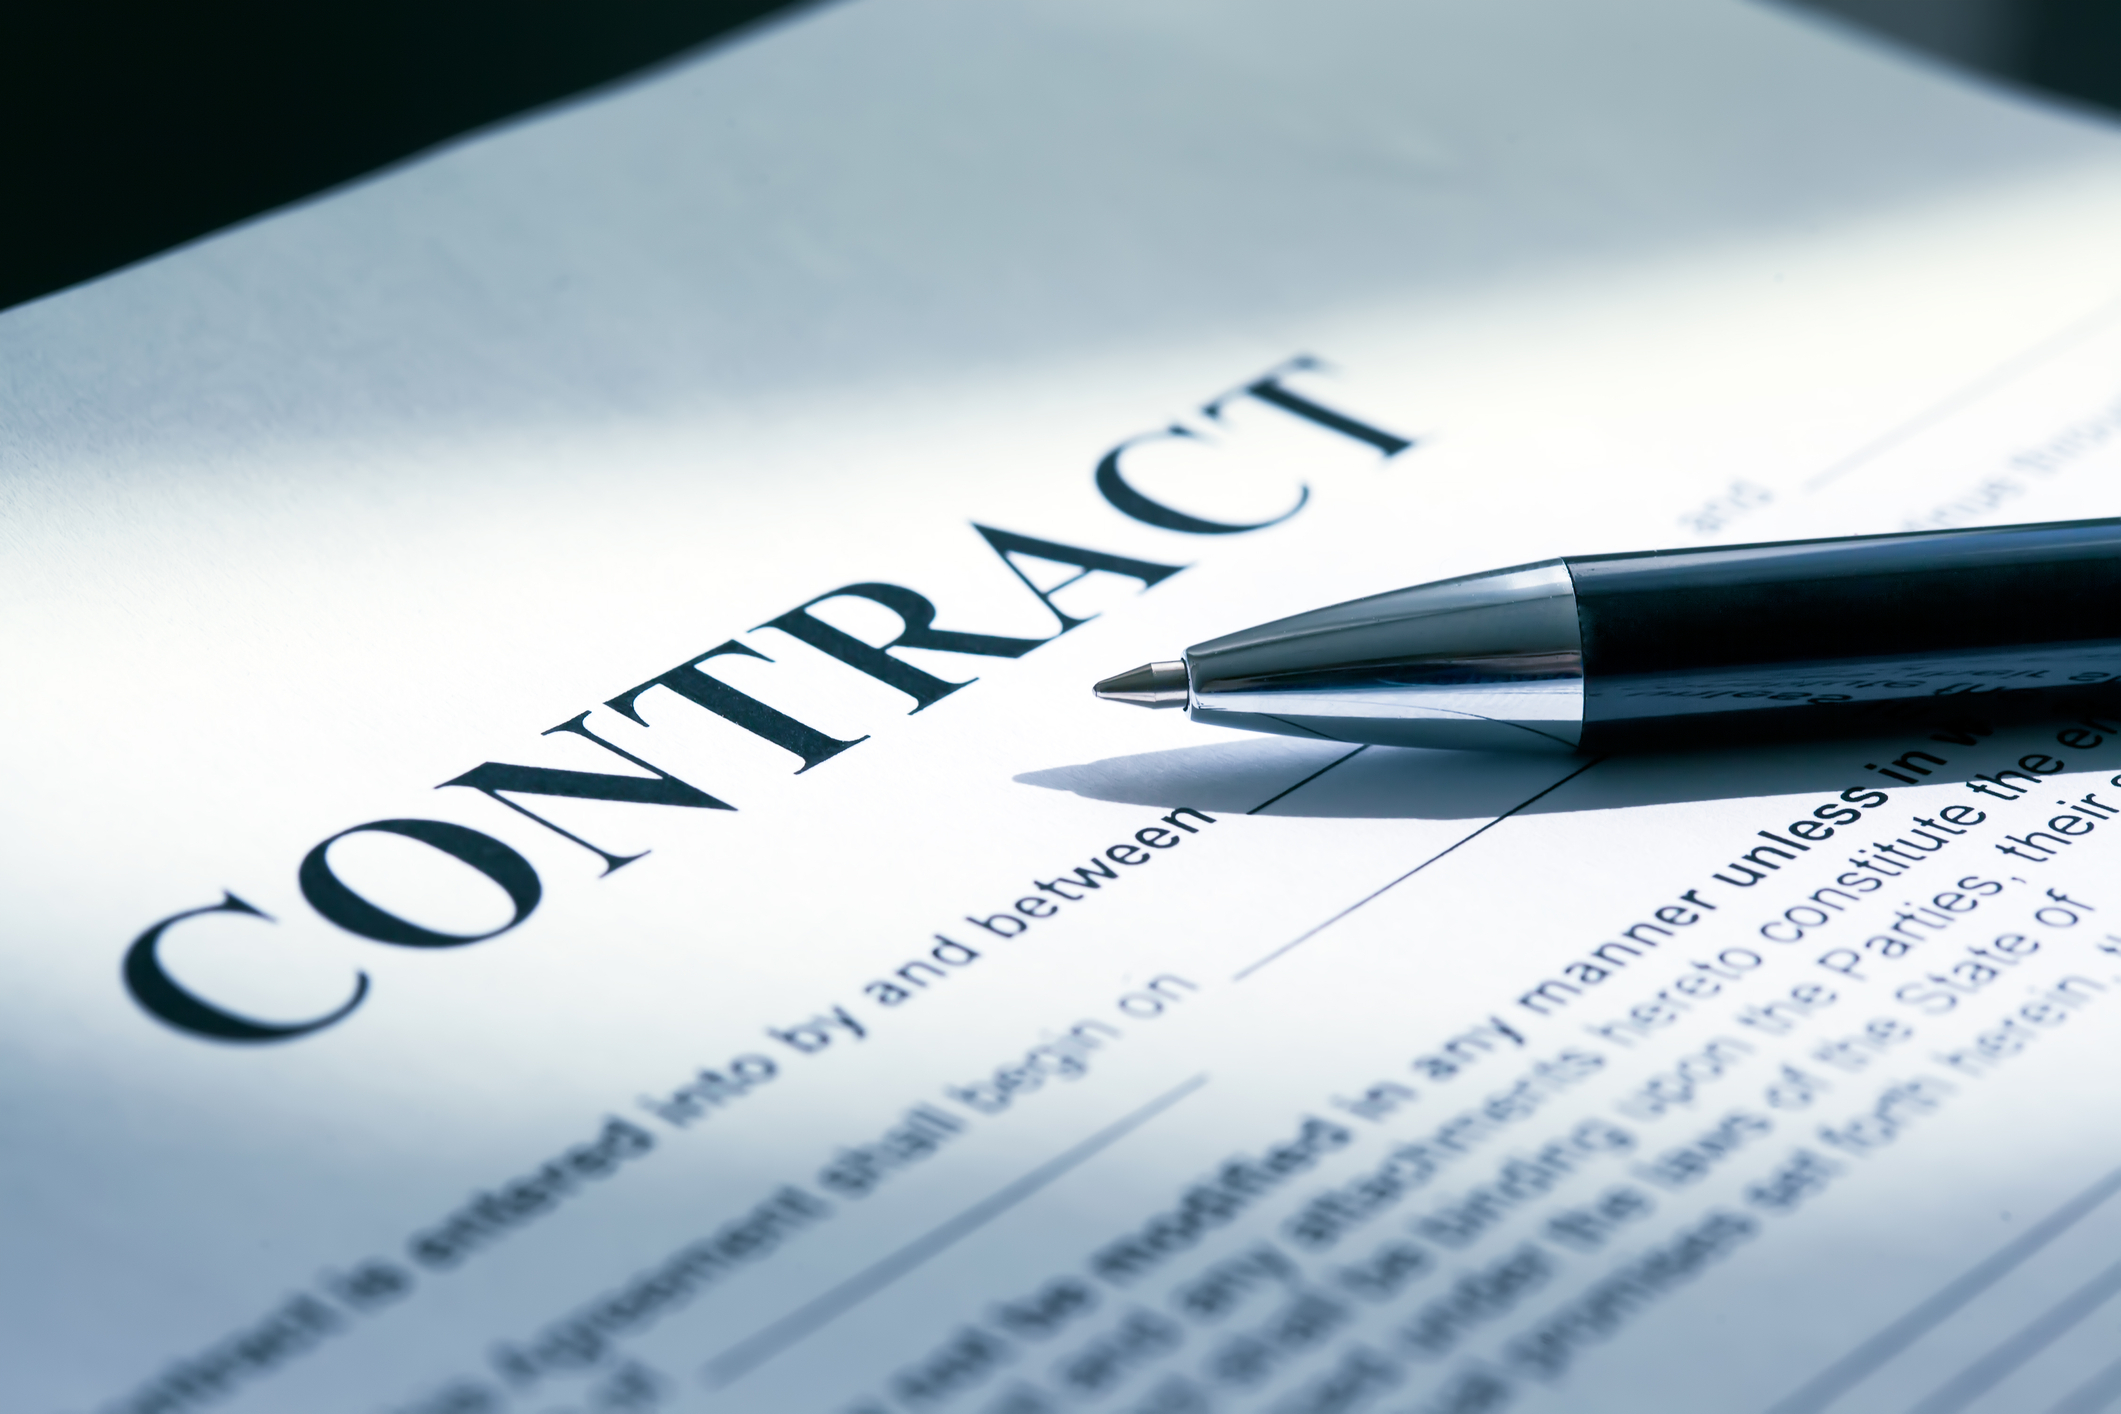 service level agreements and contracts